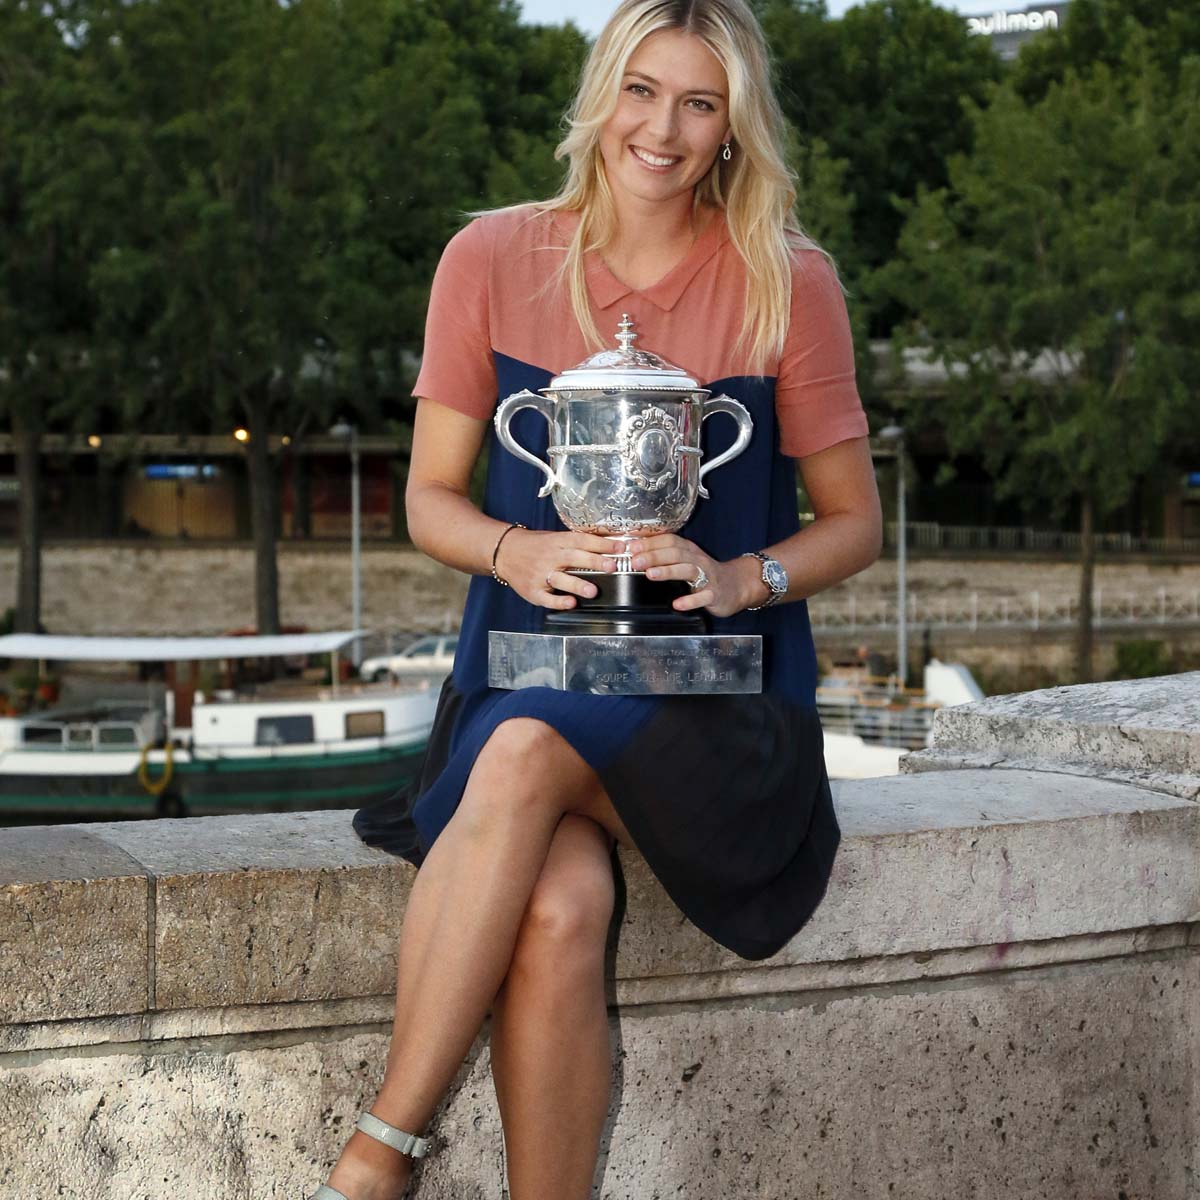 Maria Sharapova's quote #7